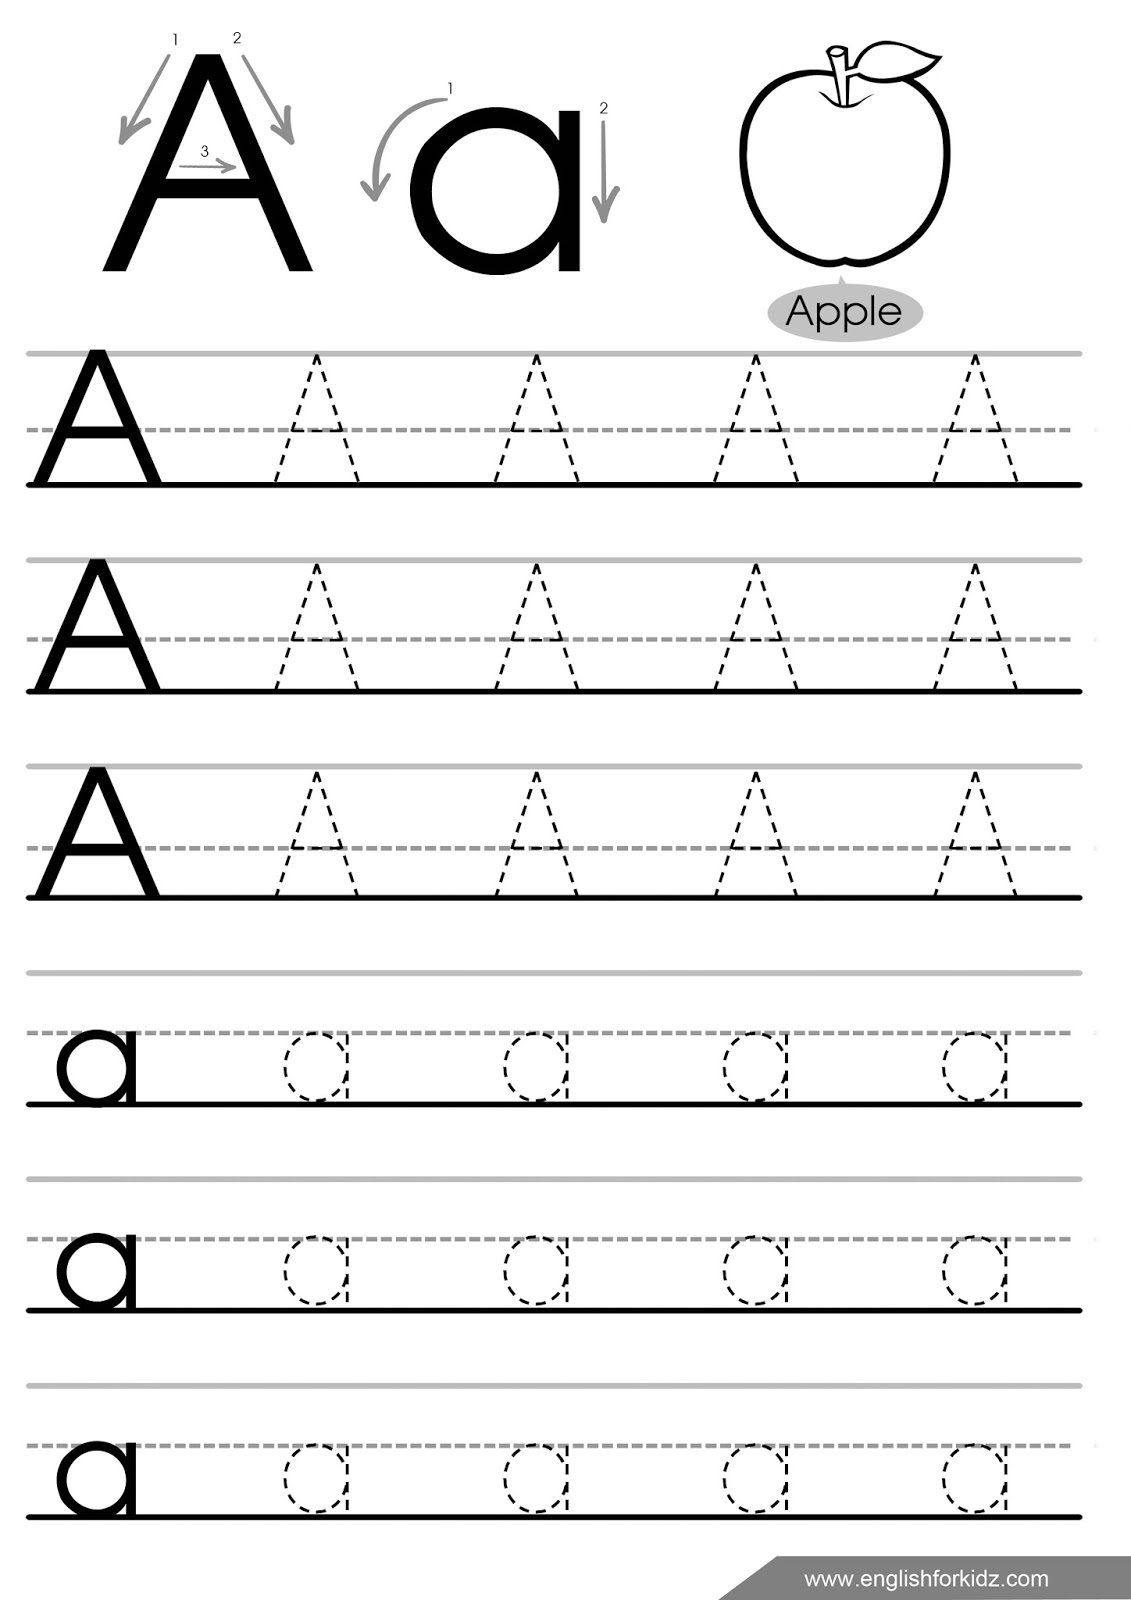 Letter Tracing Worksheets (Letters A - J) for Alphabet Tracing Sheets Printable